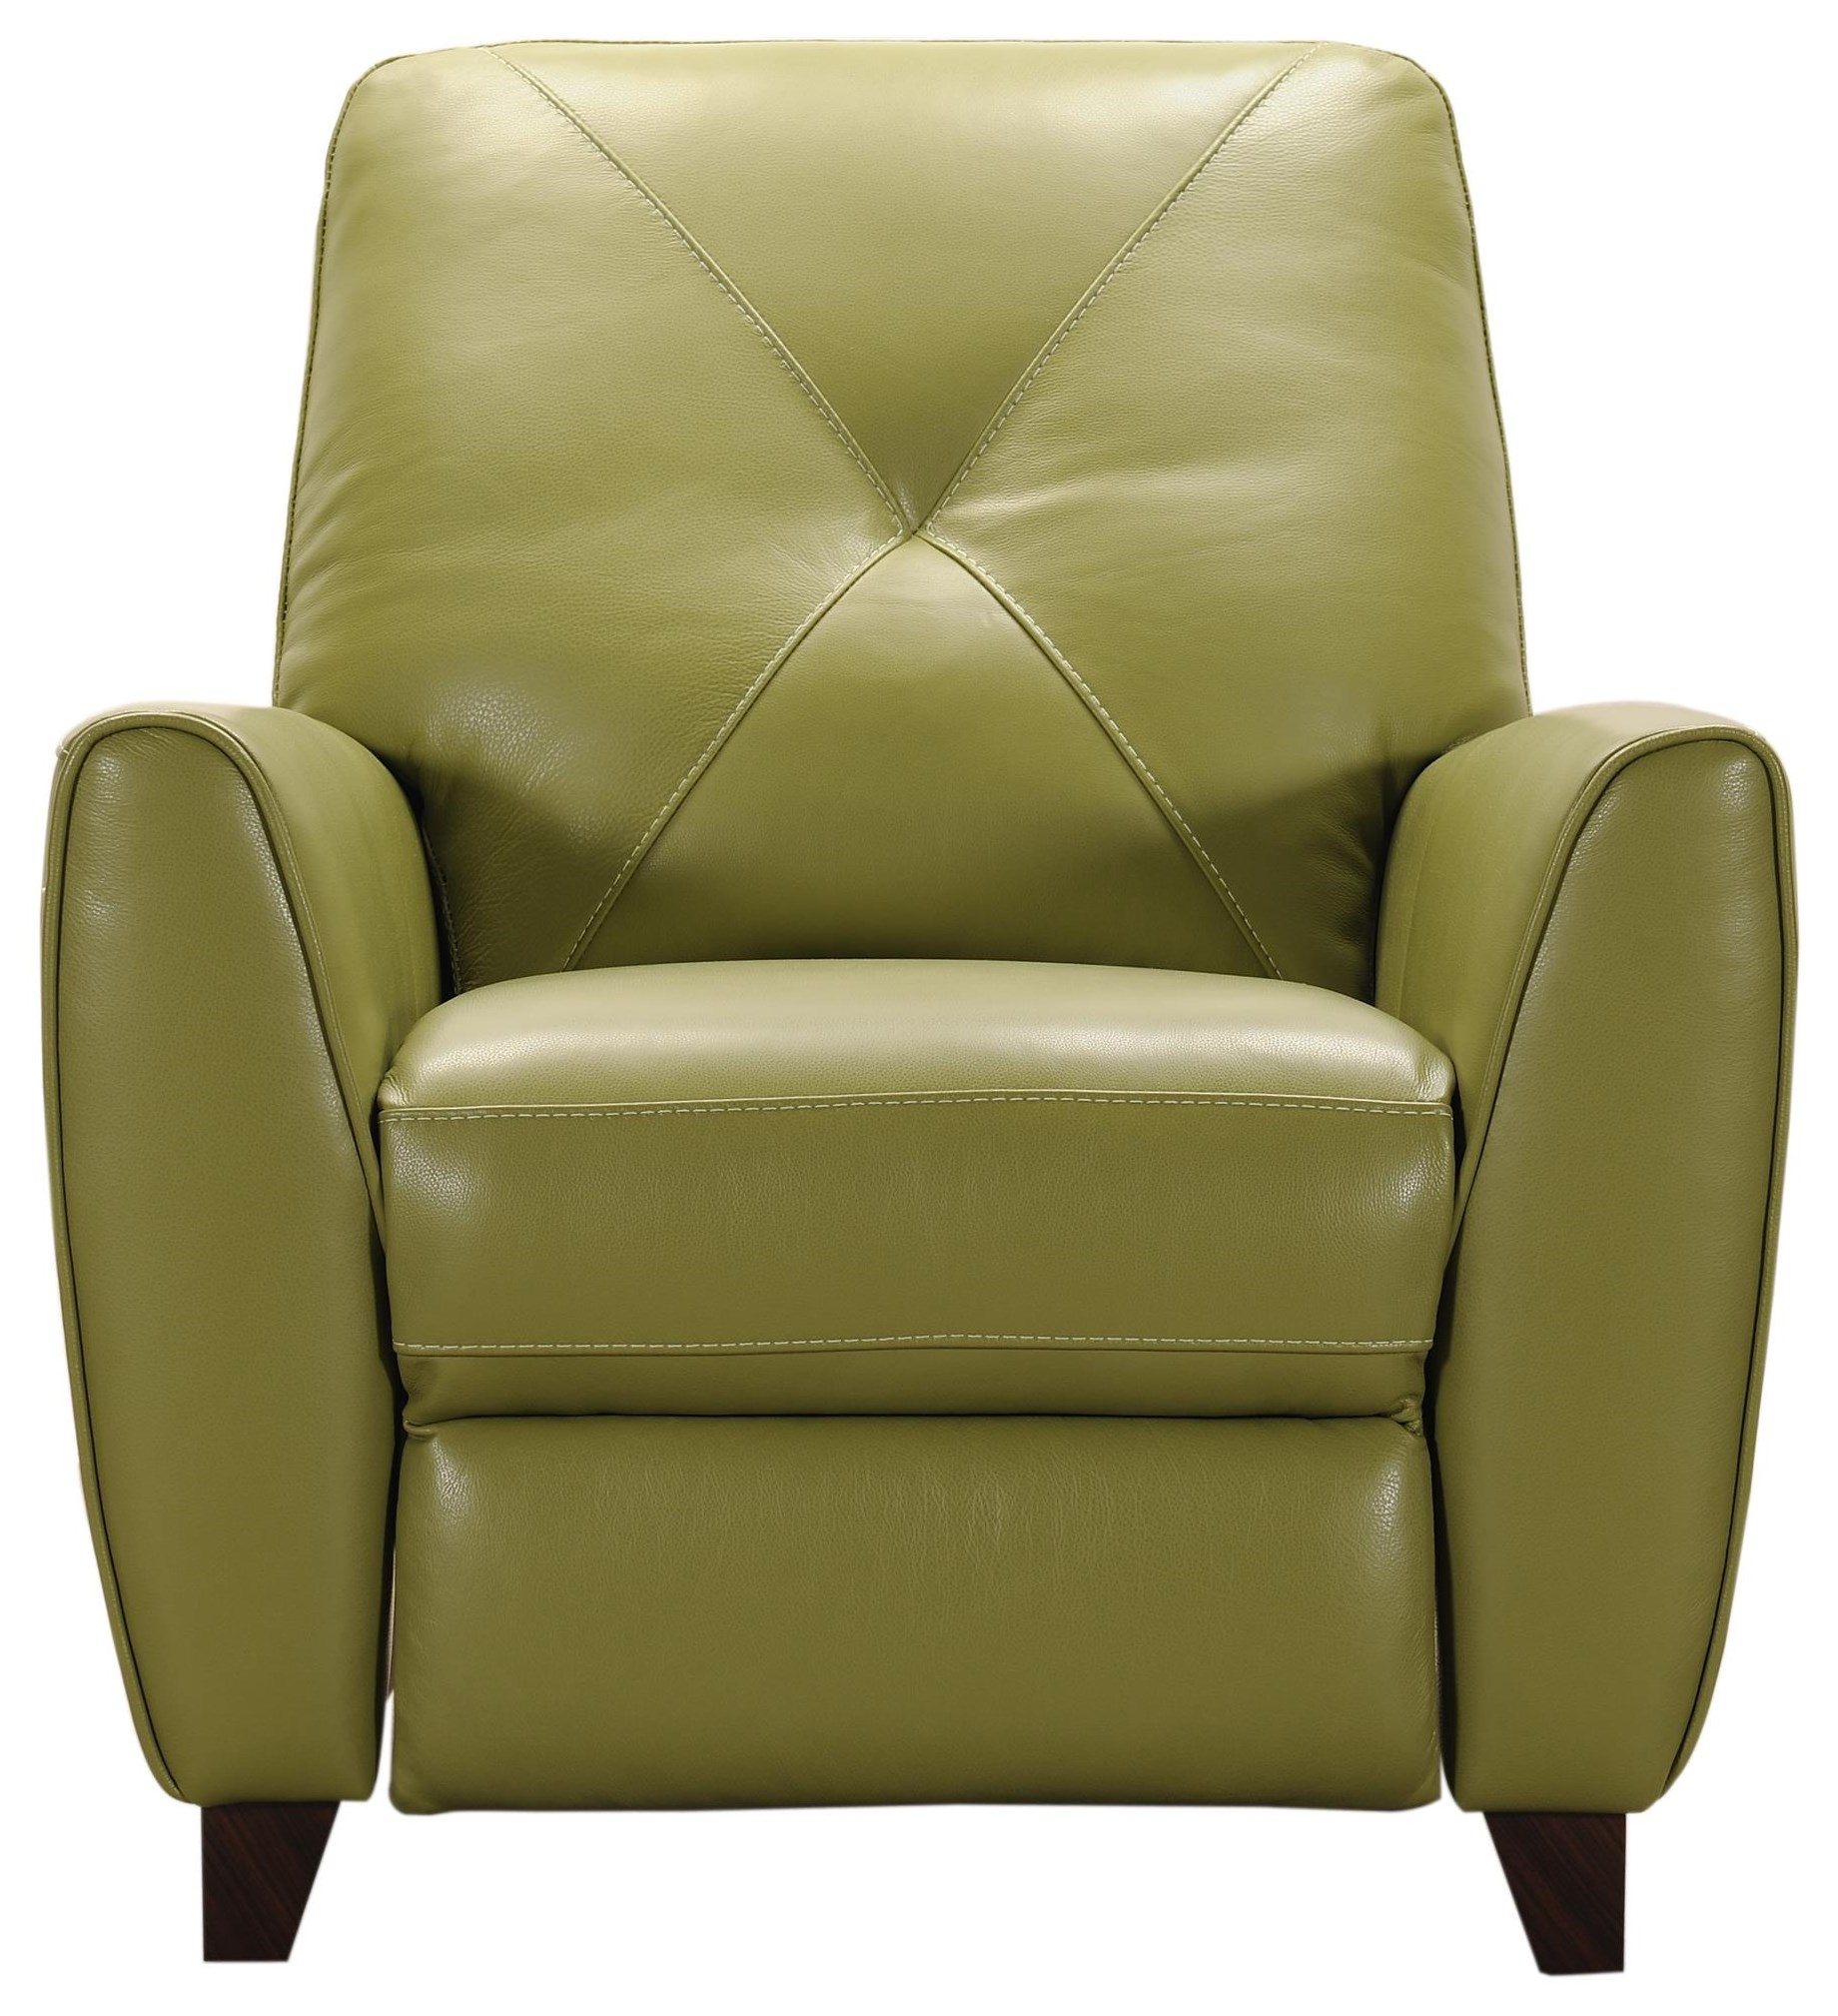 Green Leather Push Back Recliner